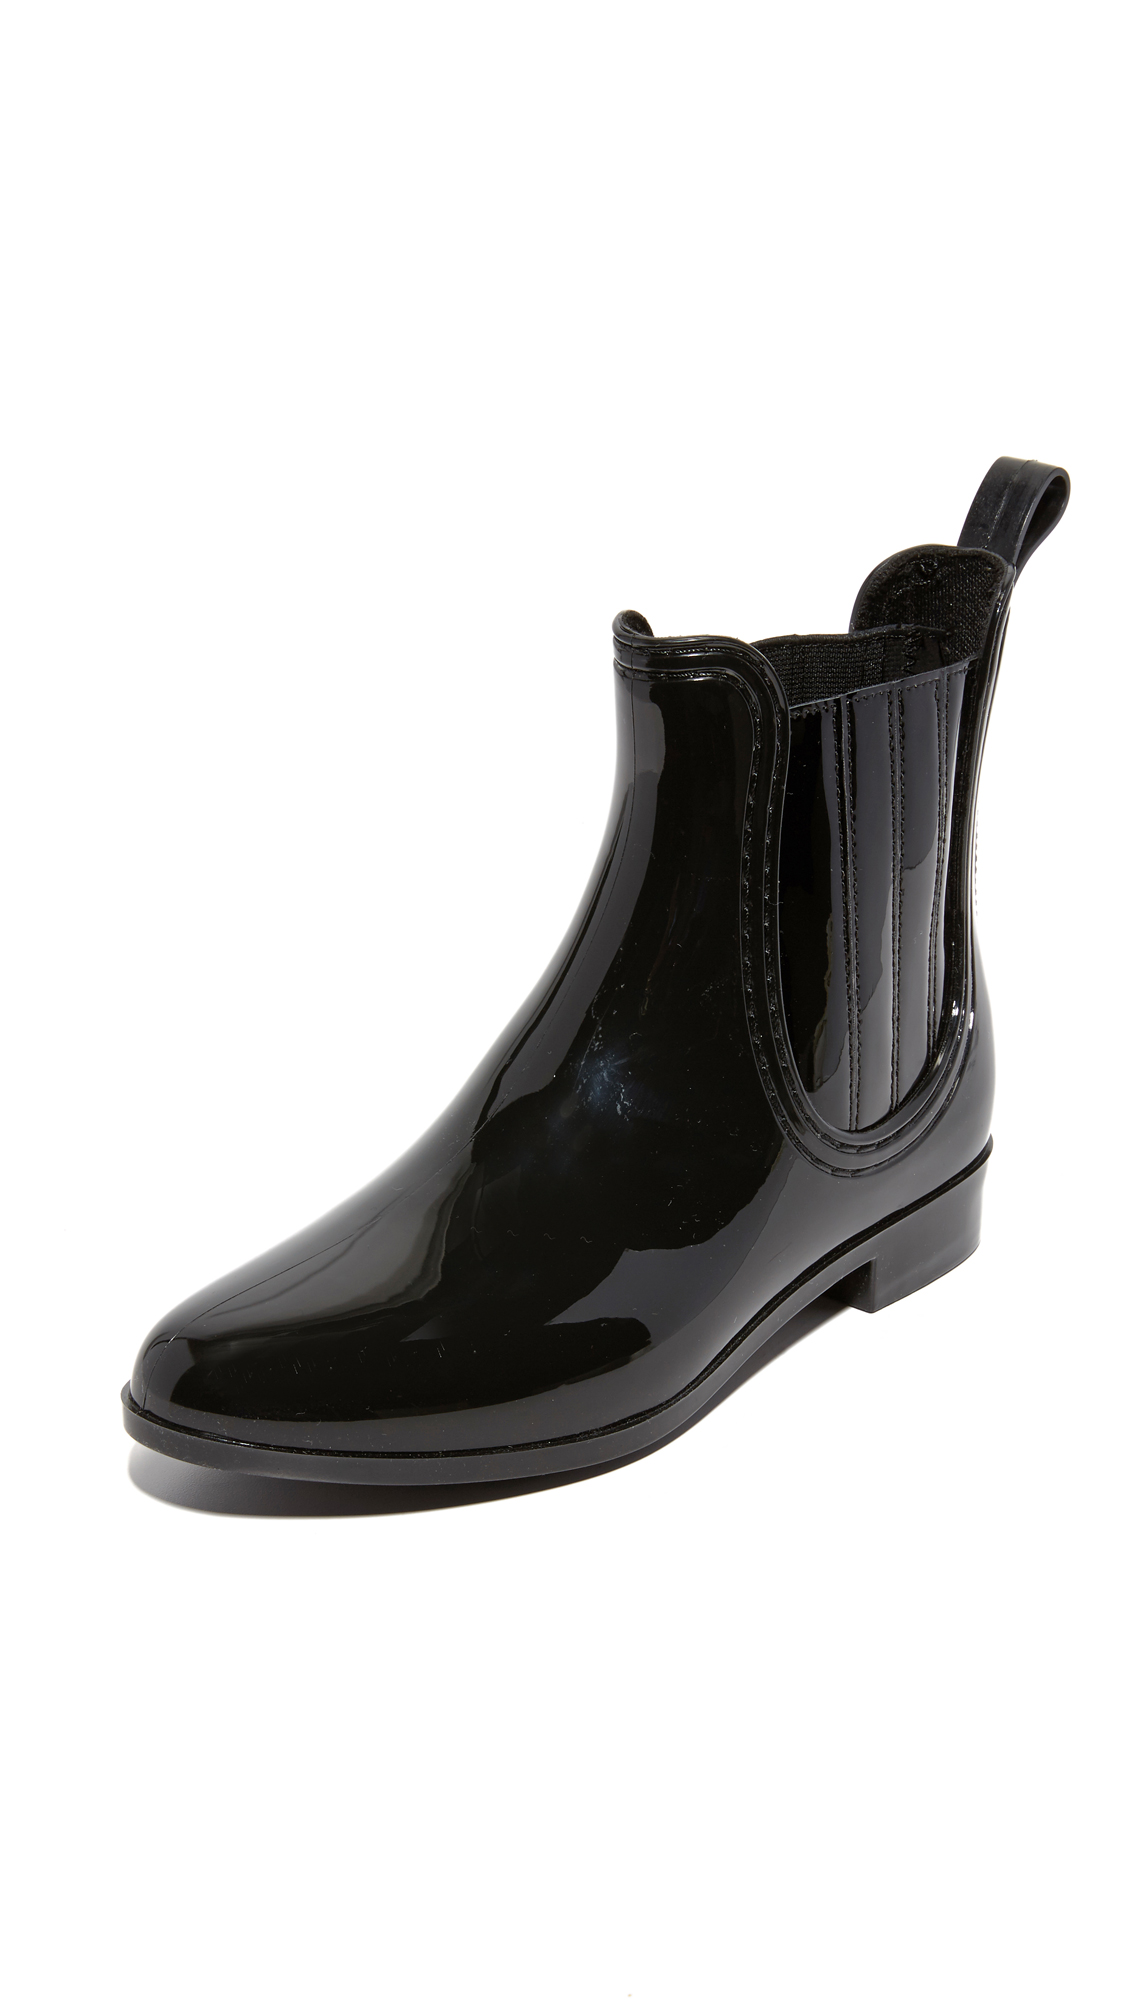 Joie Kada Rain Booties - Black at Shopbop